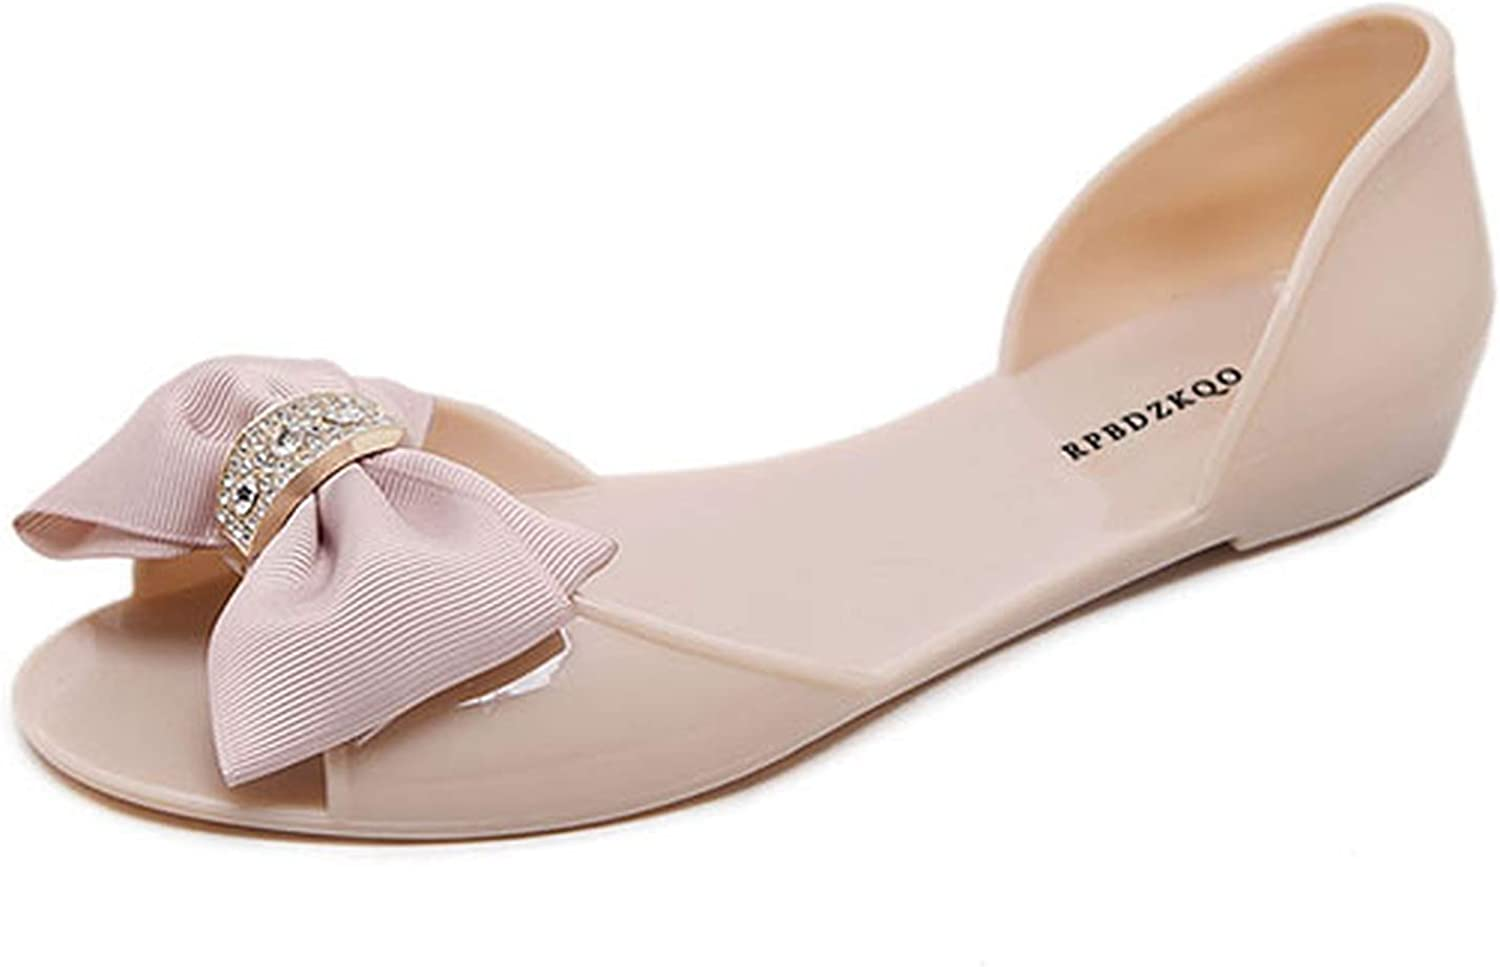 Heat-Tracing shoes Crystal Cute Transparent Bow Slip On PVC Diamond Nice Sandals,Pink,40